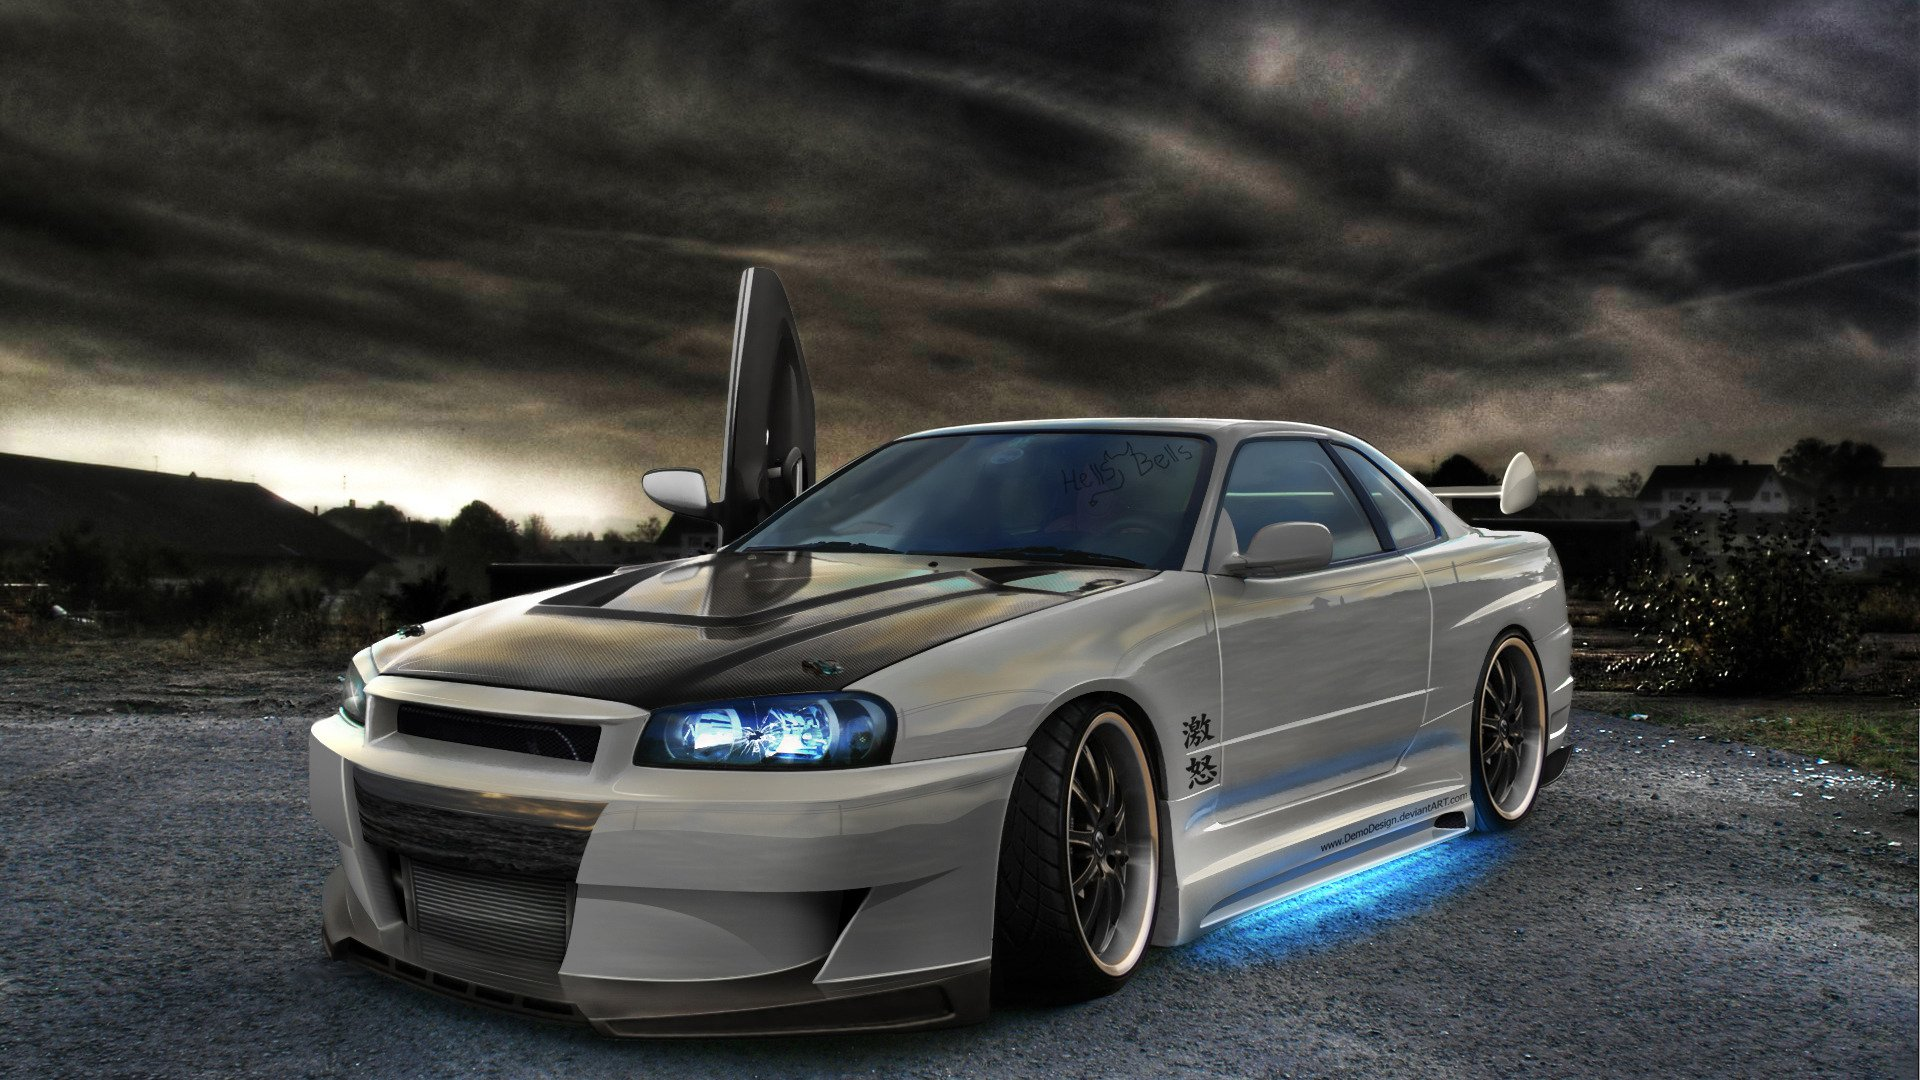 Free Download Nissan Skyline Gtr R34 Wallpaper 1920x1080 Images